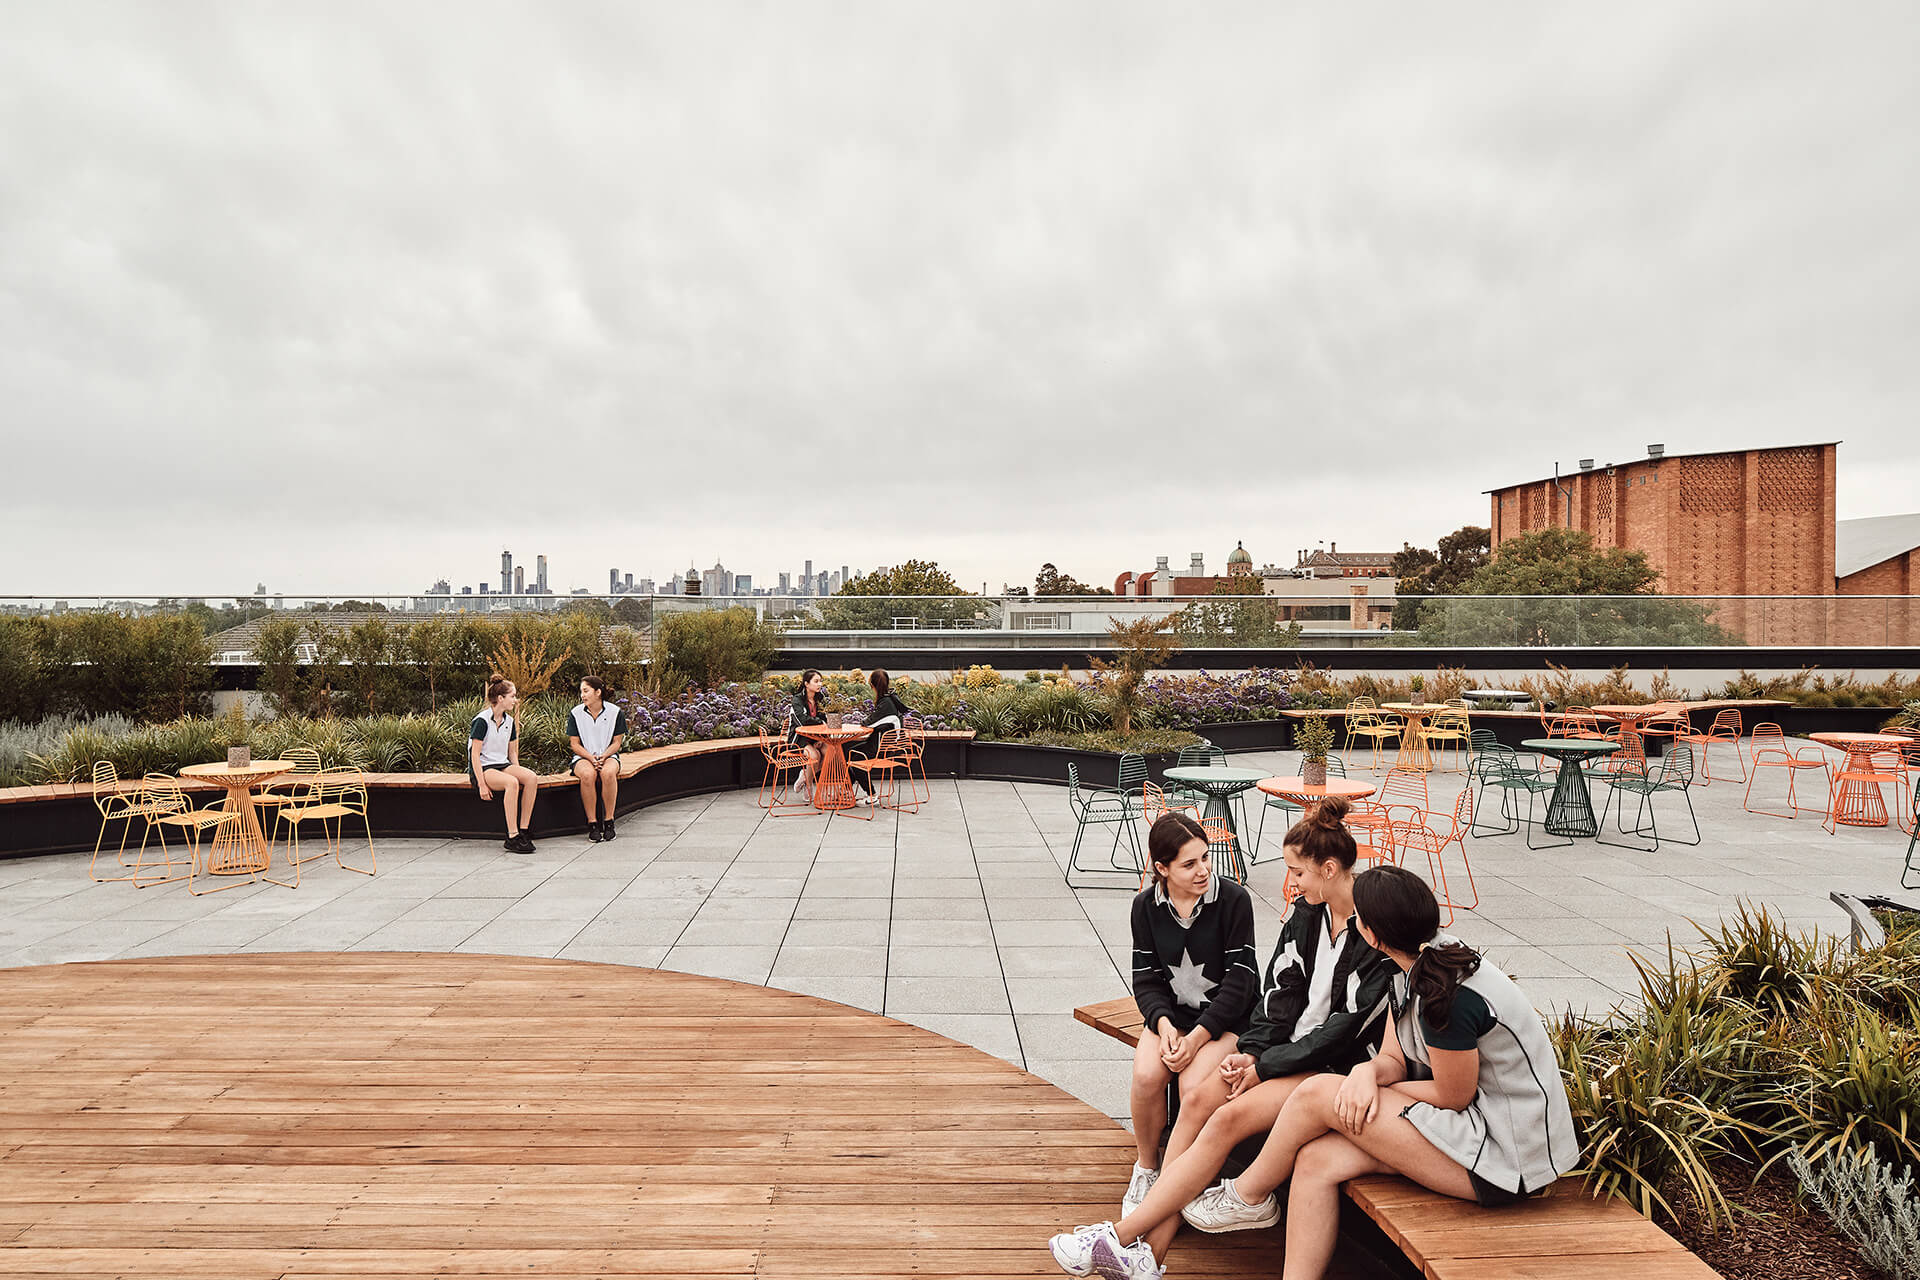 The rooftop terrace, which opens opportunities for outdoor learning | MLC Nicholas Learning Centre by Mcildowie Partners| STIRworld